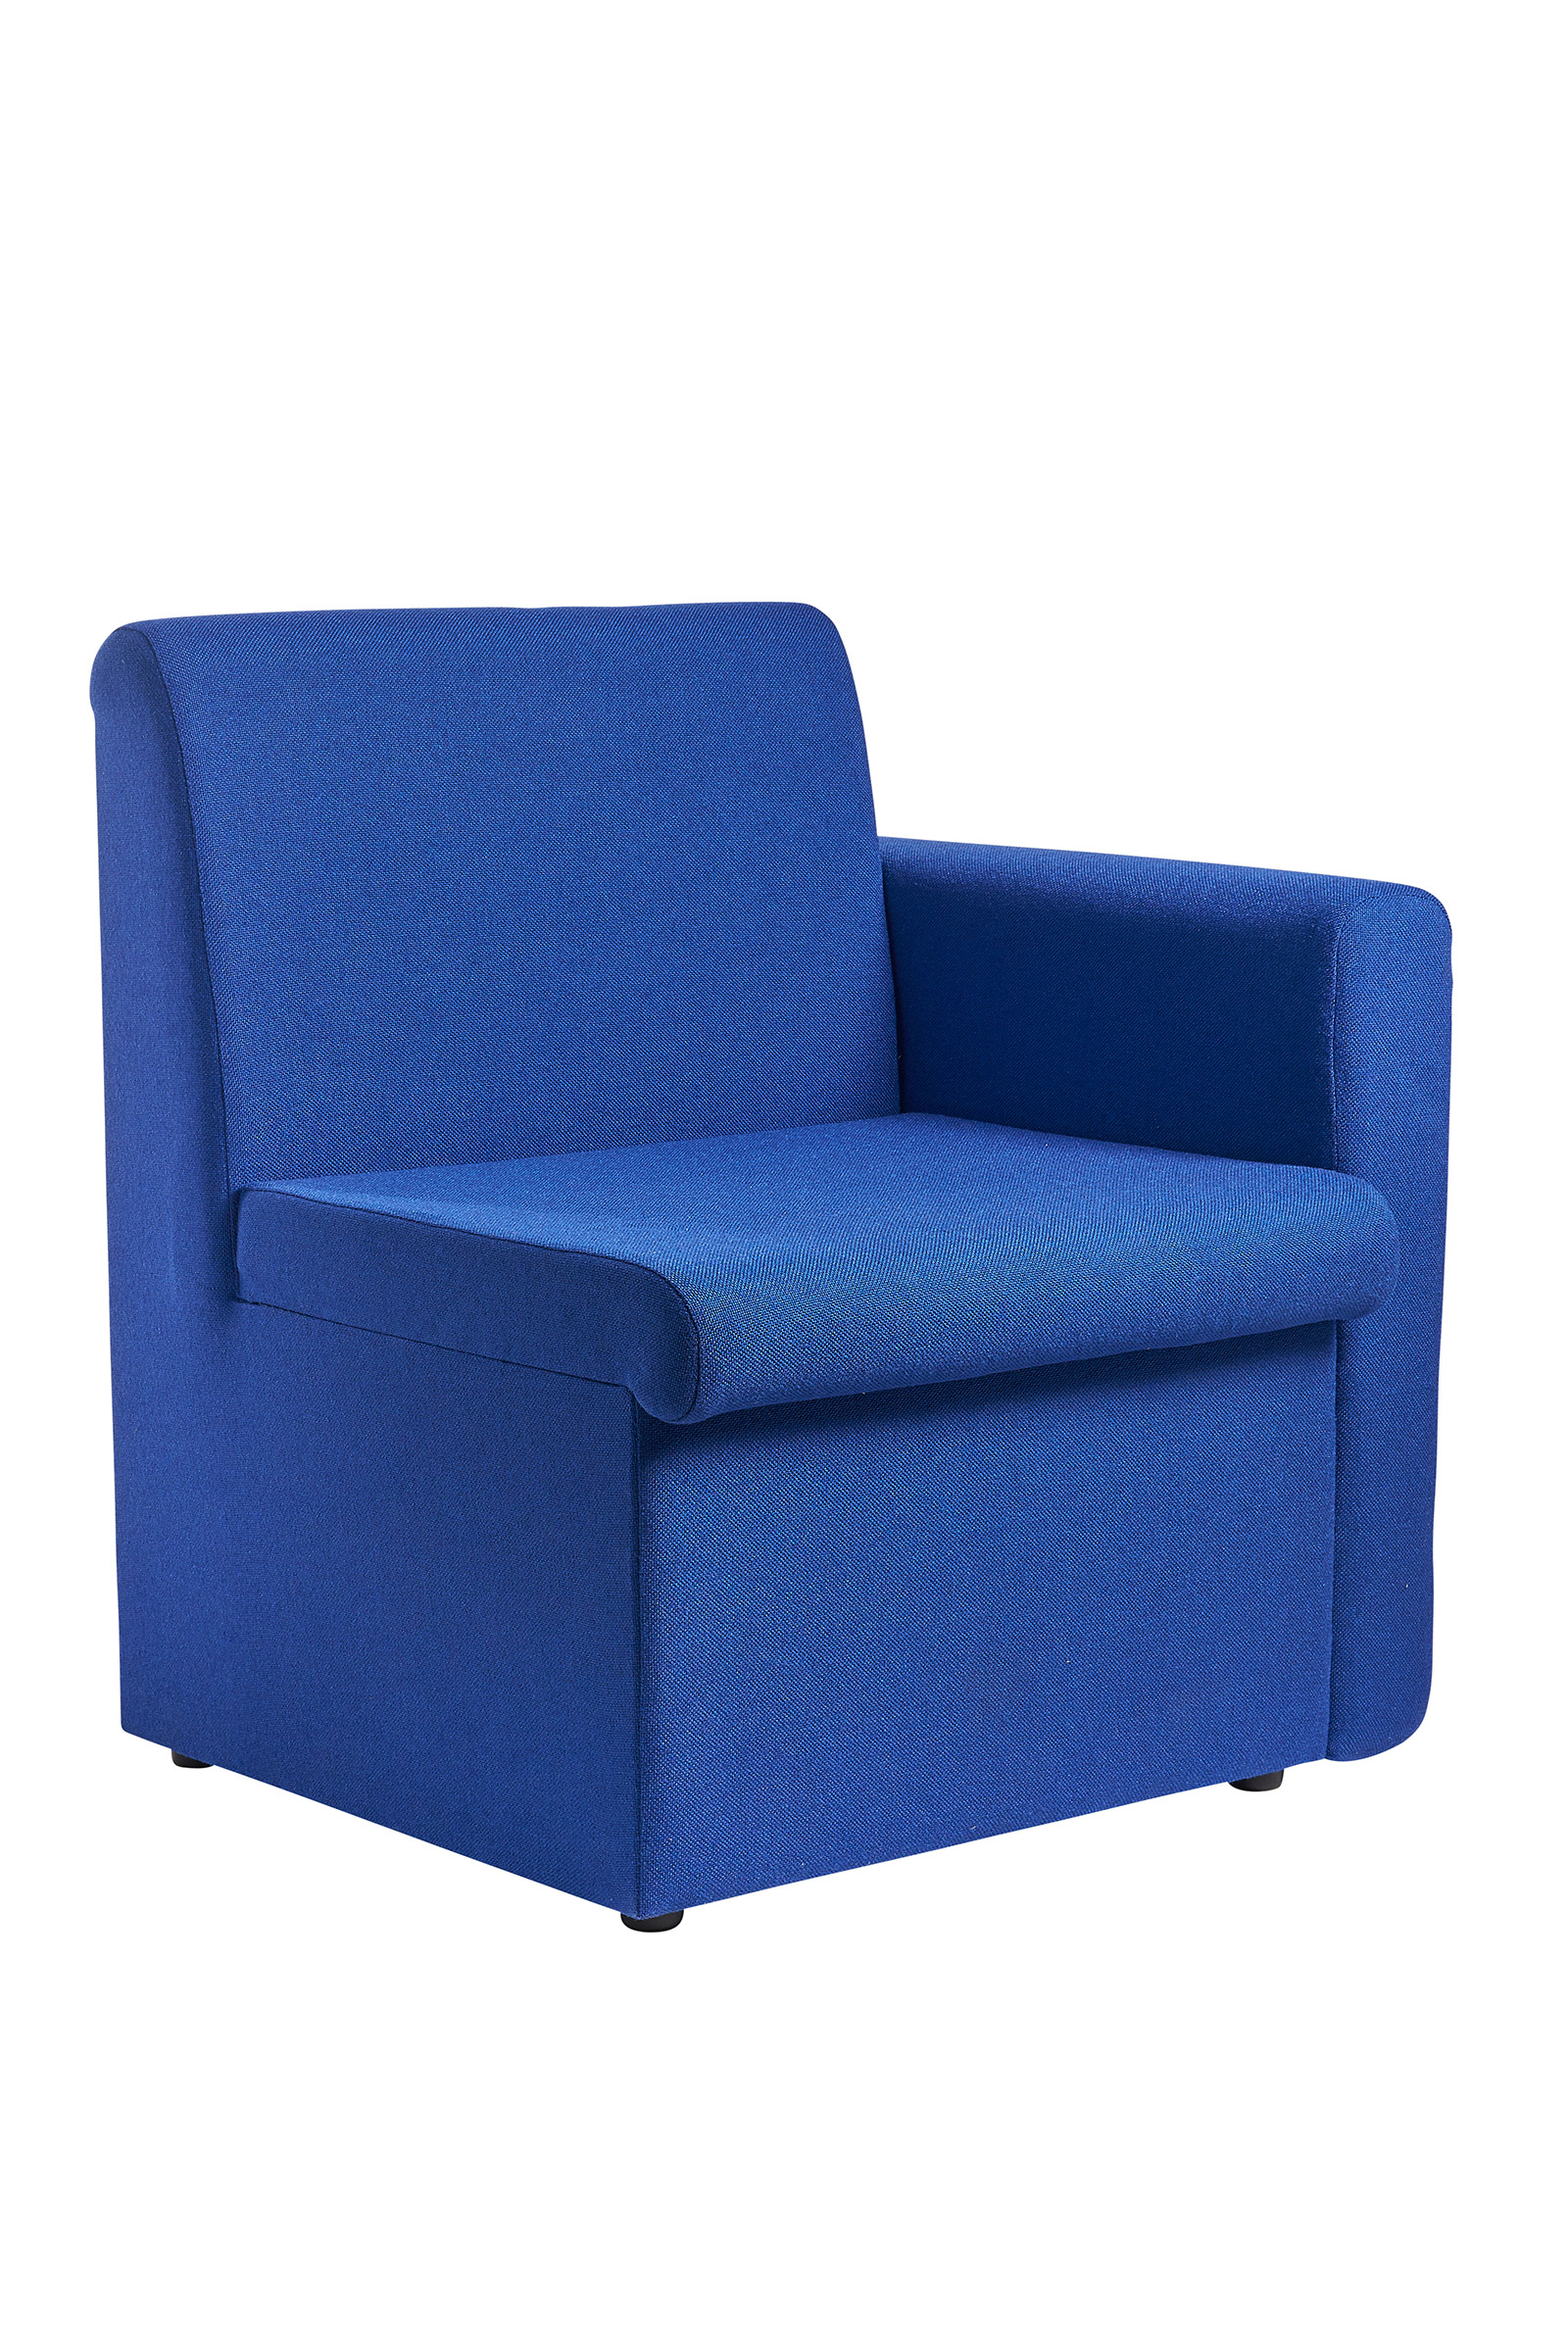 Alto reception unit LH Arm blue